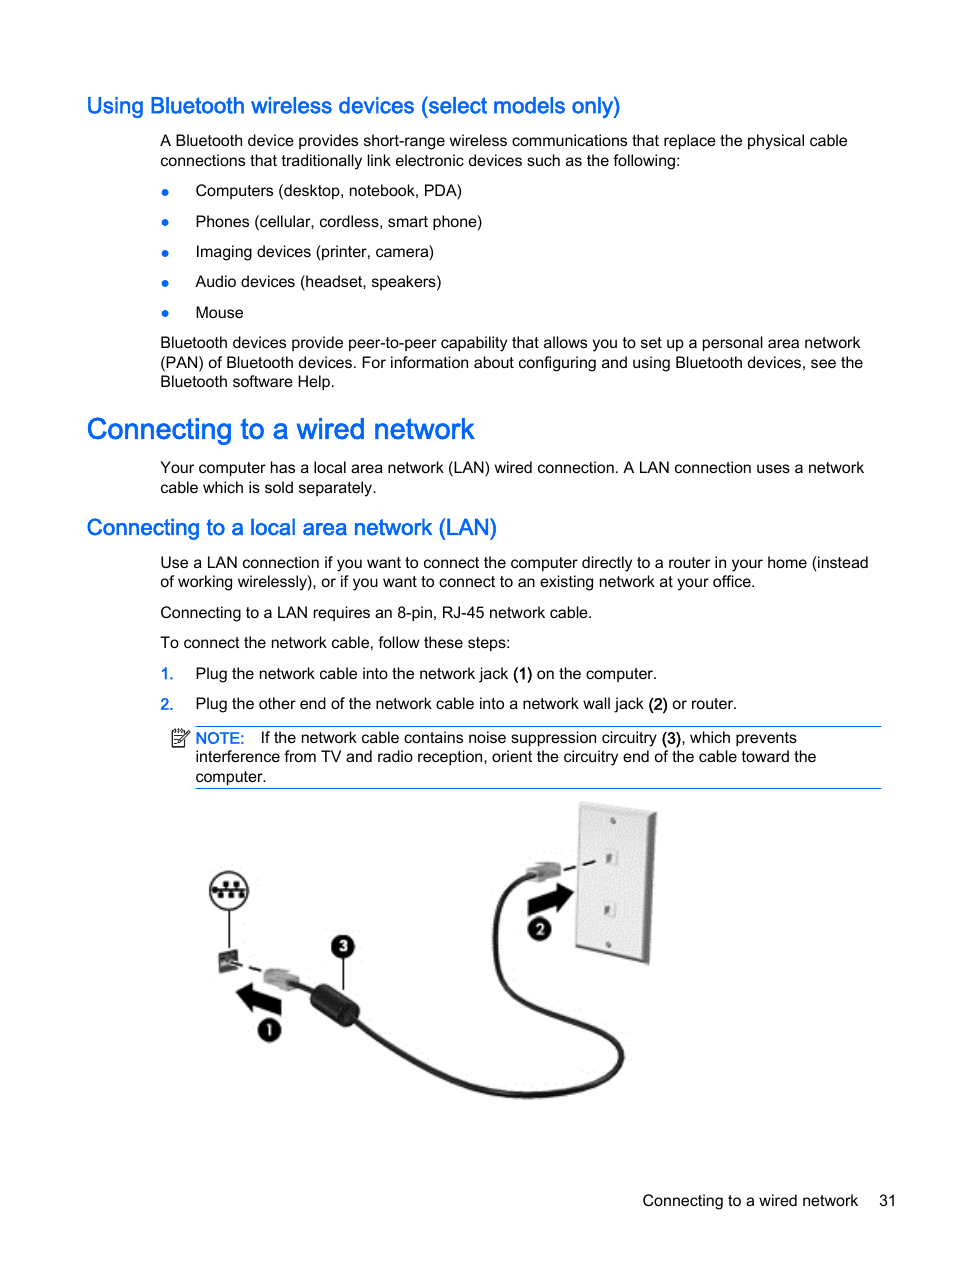 Connecting to a wired network, Connecting to a local area network